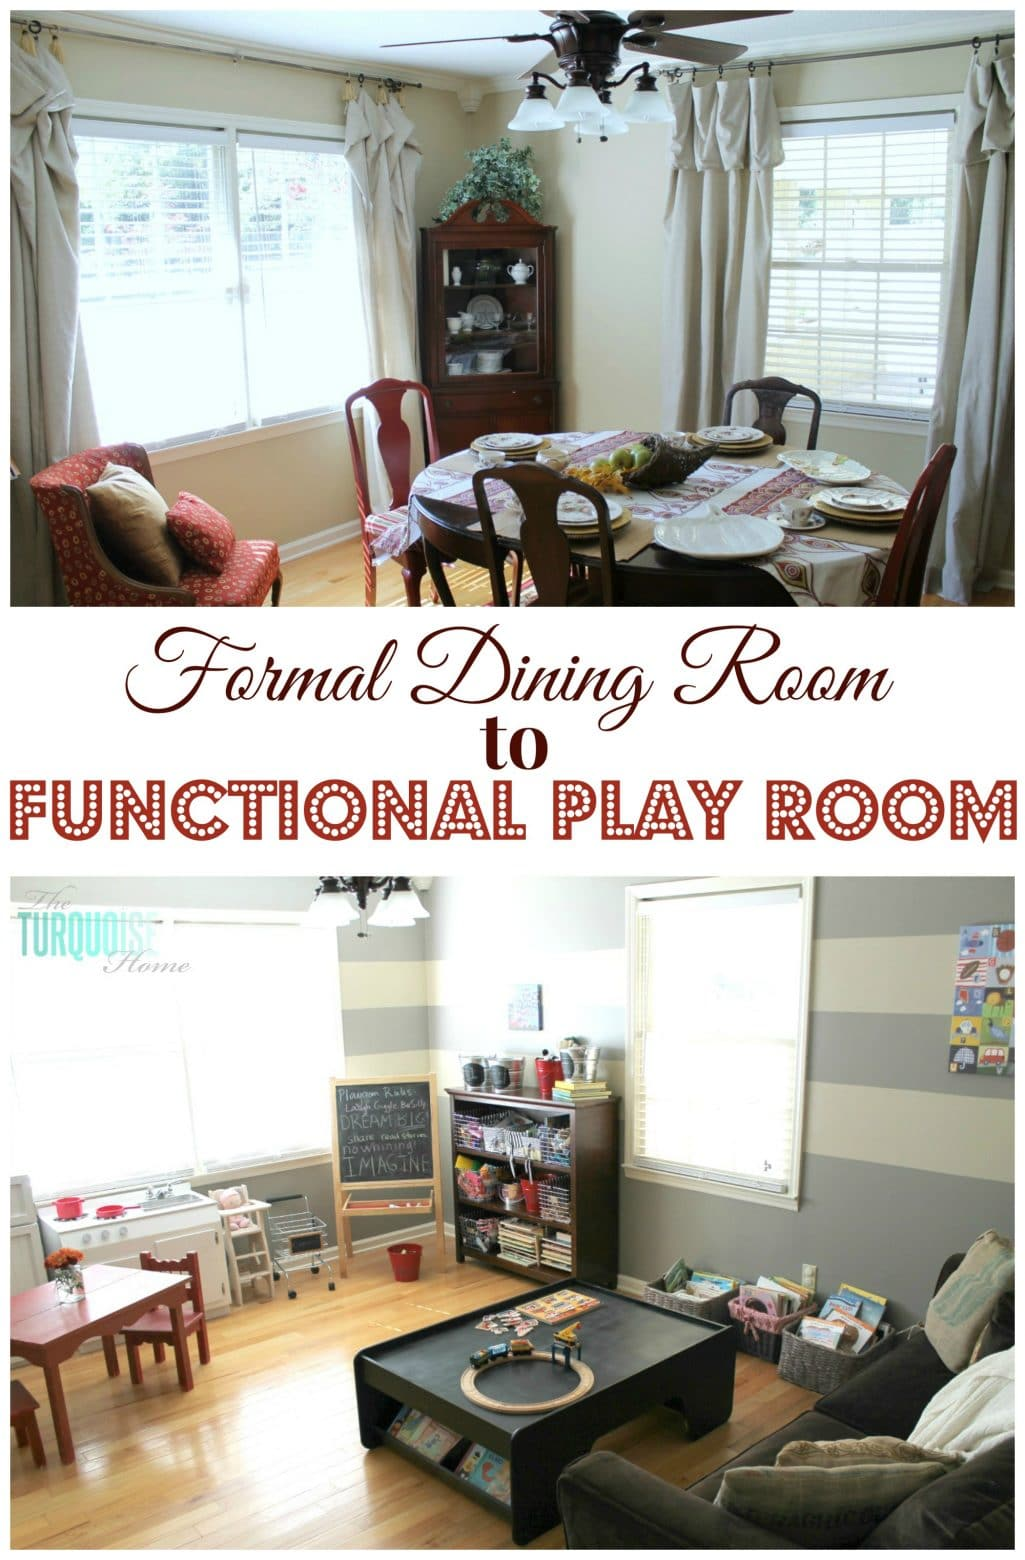 formal dining room to functional play room | the turquoise home